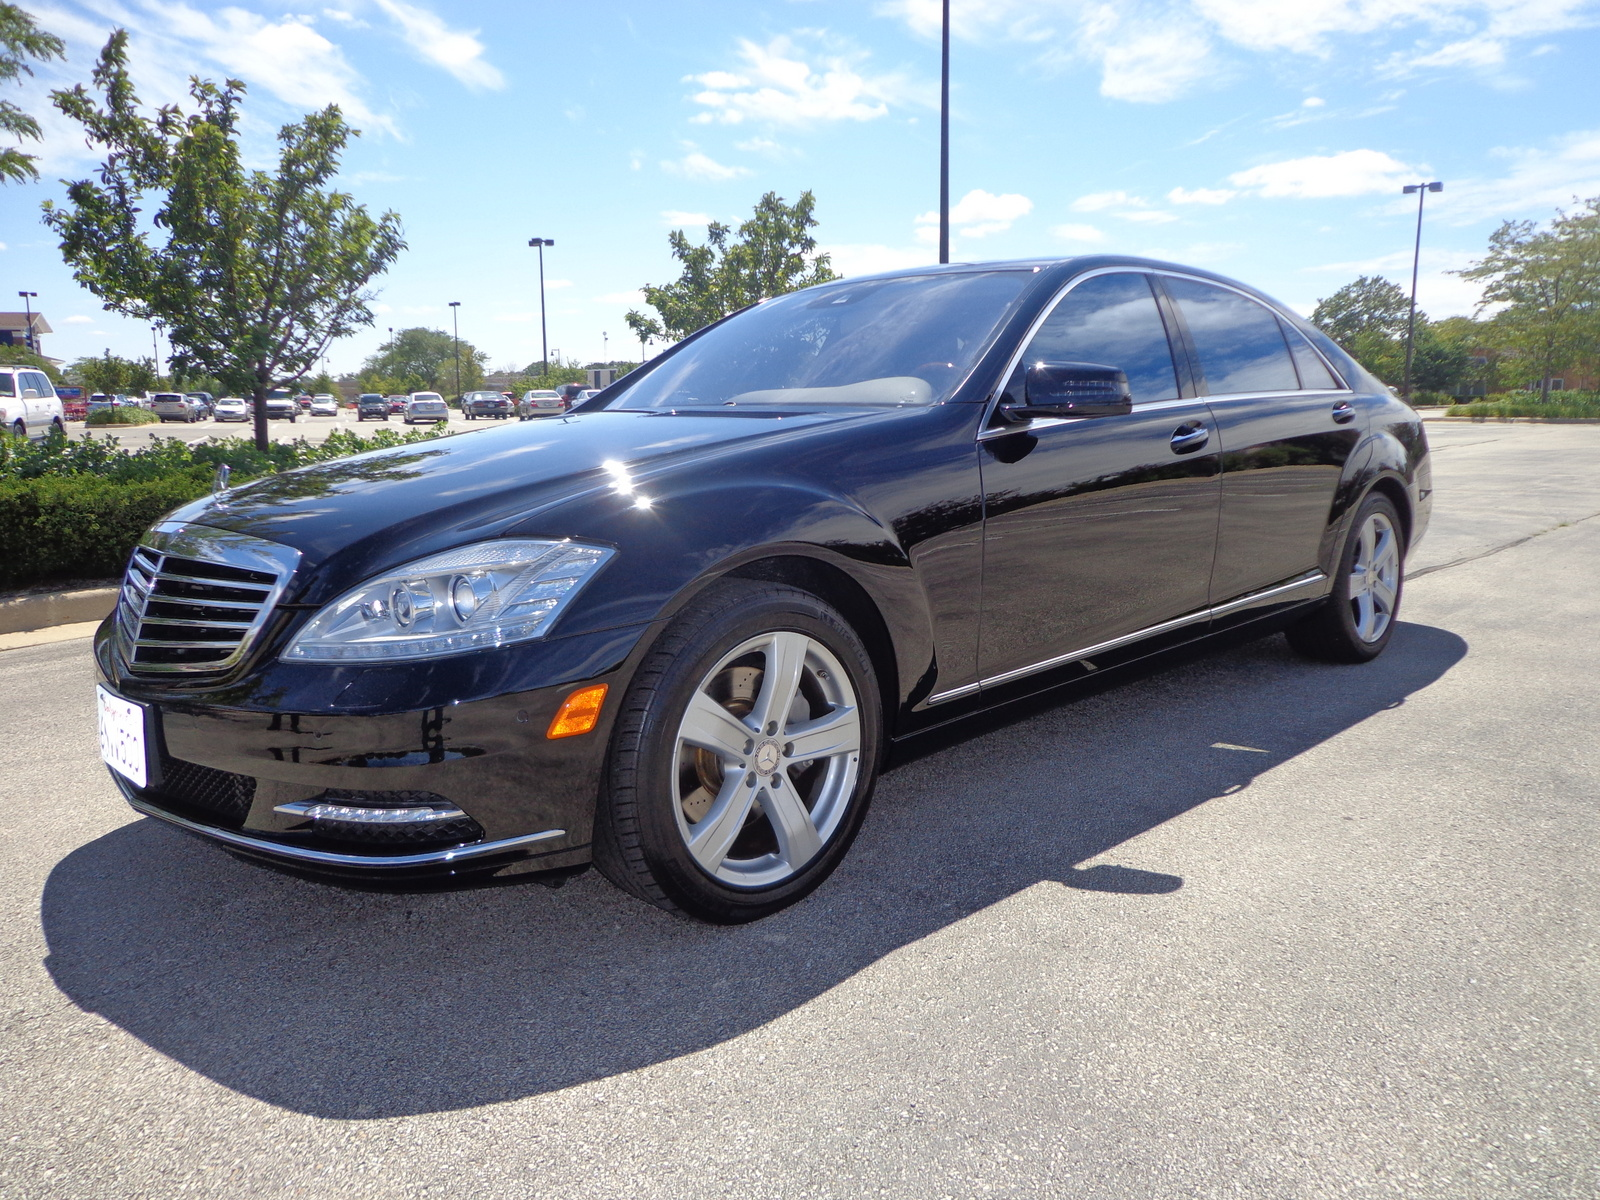 Pin 2010 mercedes s class photos wwwdieselstationcom on for Mercedes benz s class amg 2010